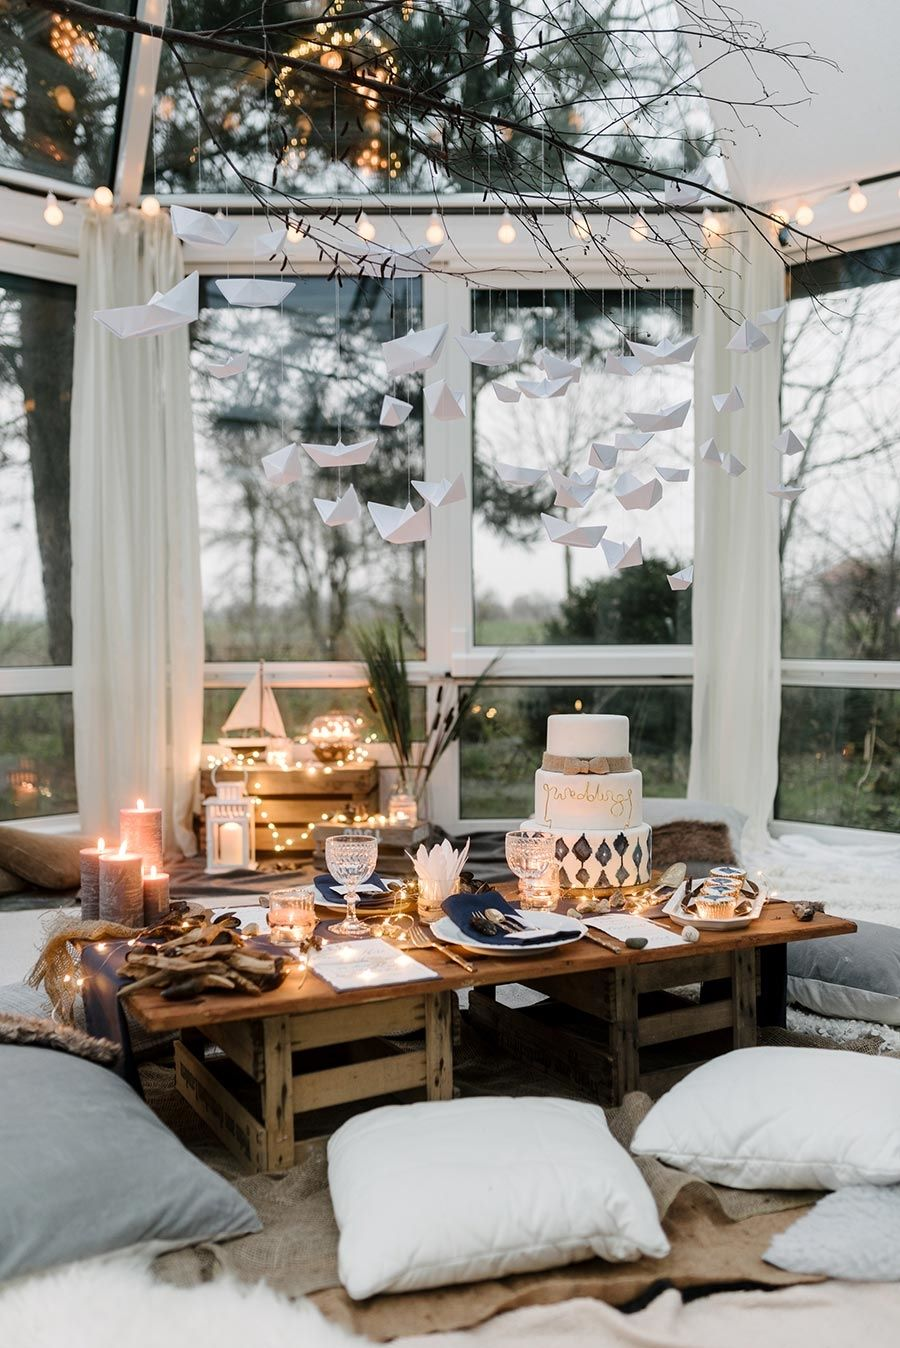 Jan 30 Life Styled :: The Hygge Home